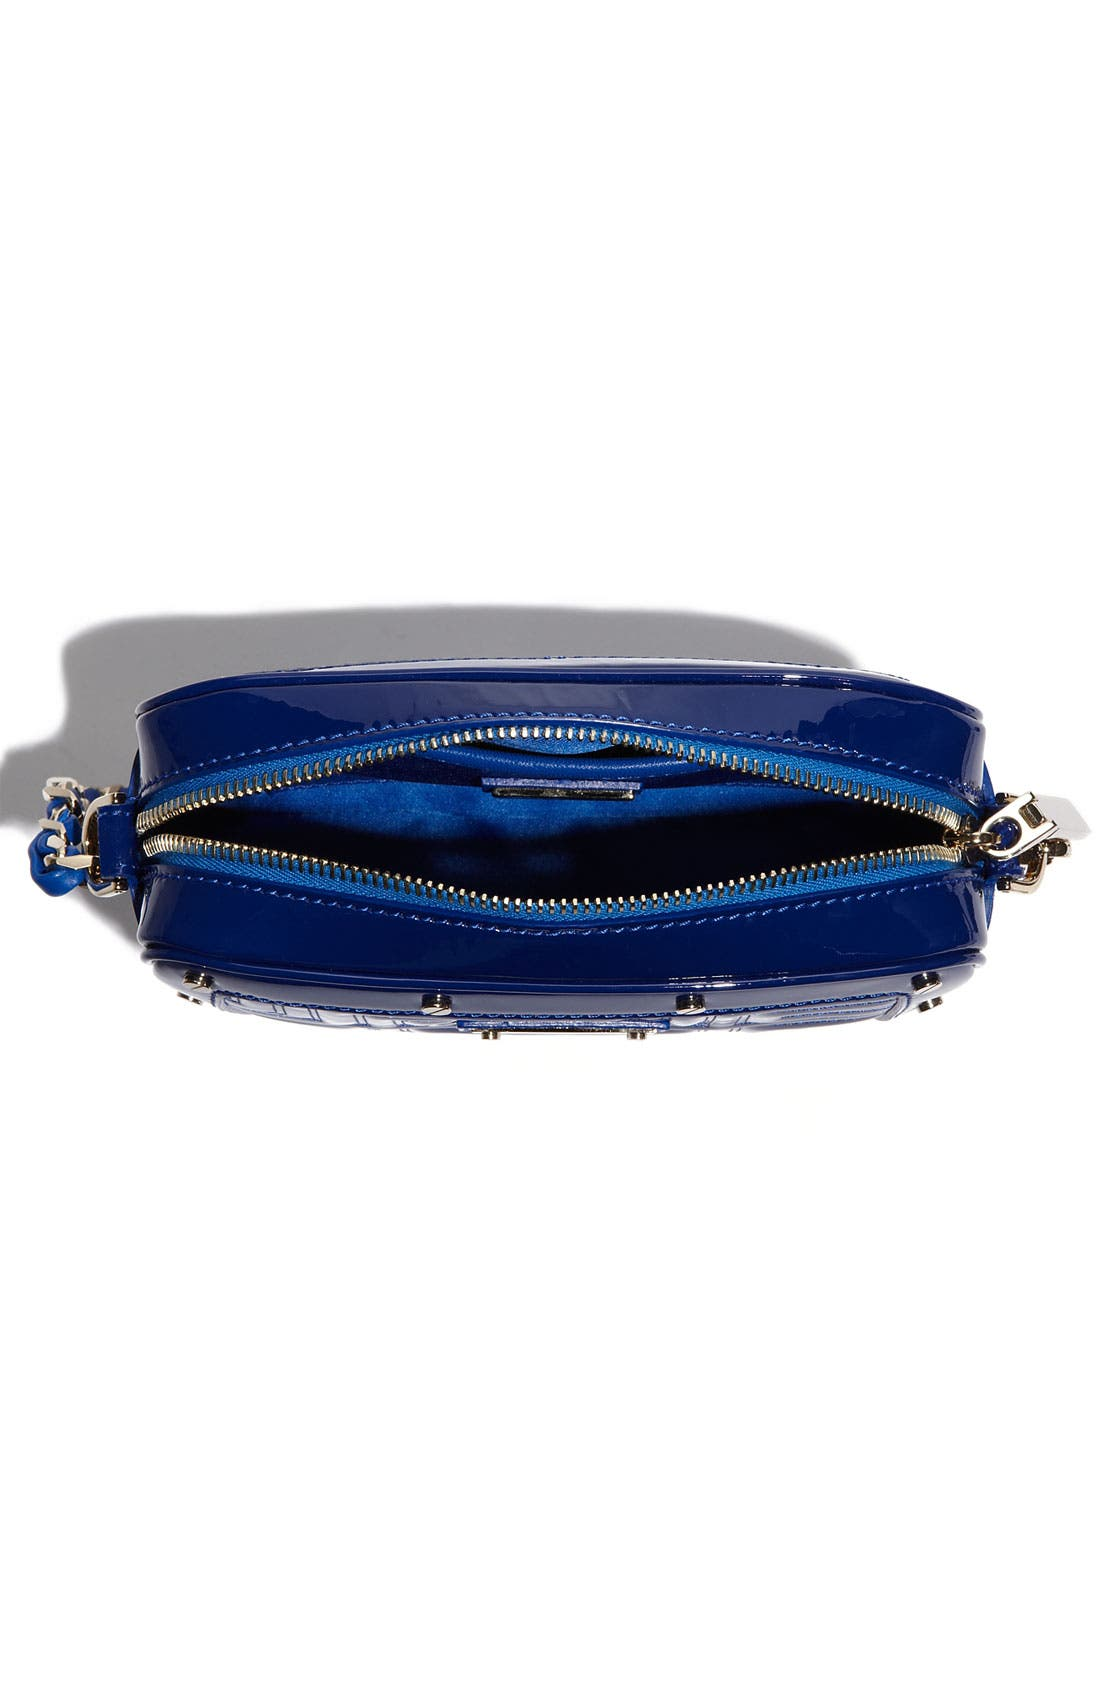 Alternate Image 3  - Versace 'Couture' Patent Leather Crossbody Bag